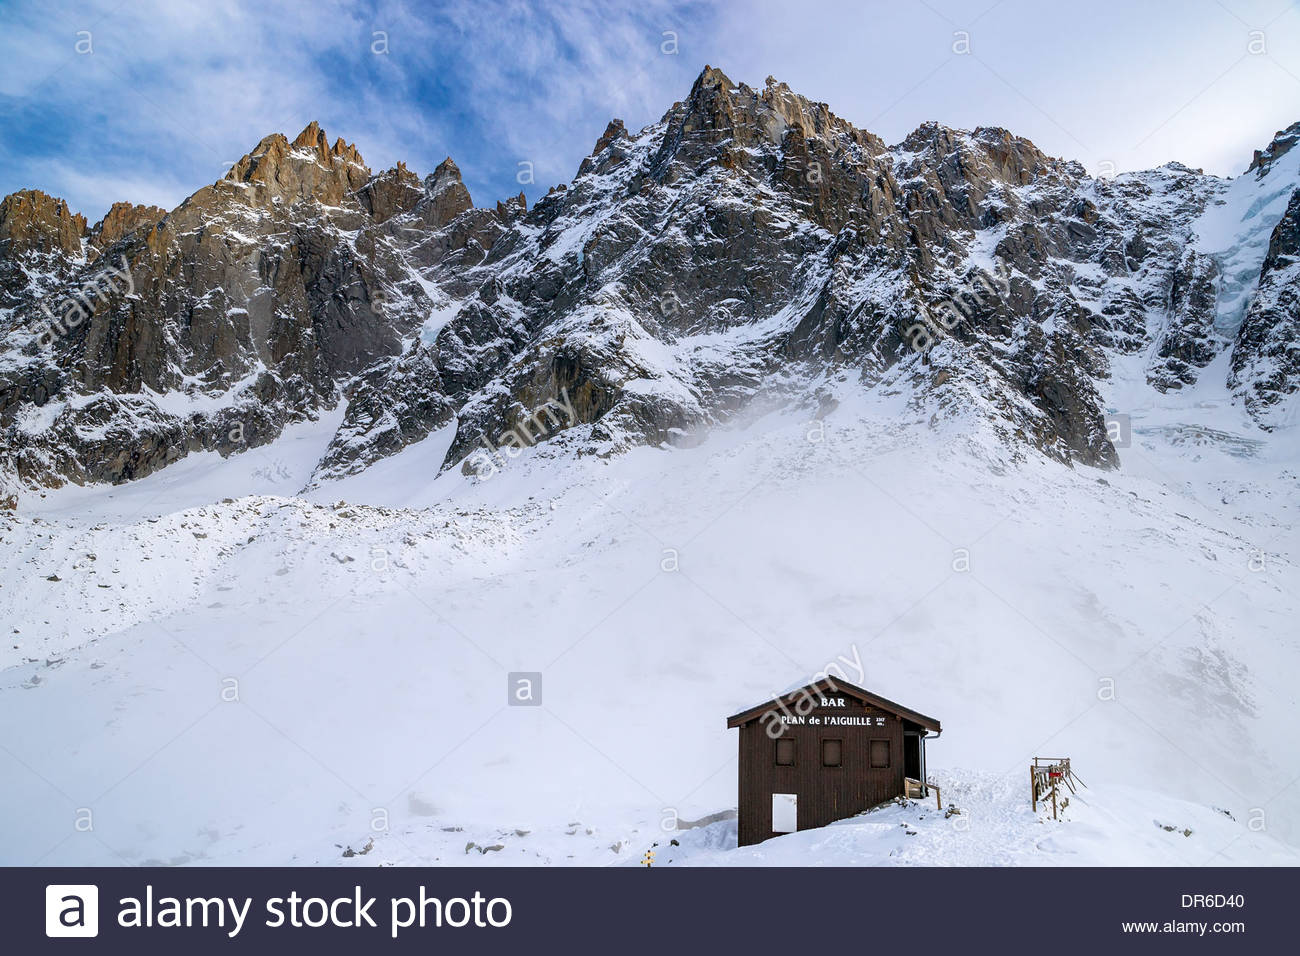 Bar du Plan de l'Aiguille (2317m) reached by the Aiguille du Midi Mont-Blanc cable car in Chamonix (France) - Stock Image